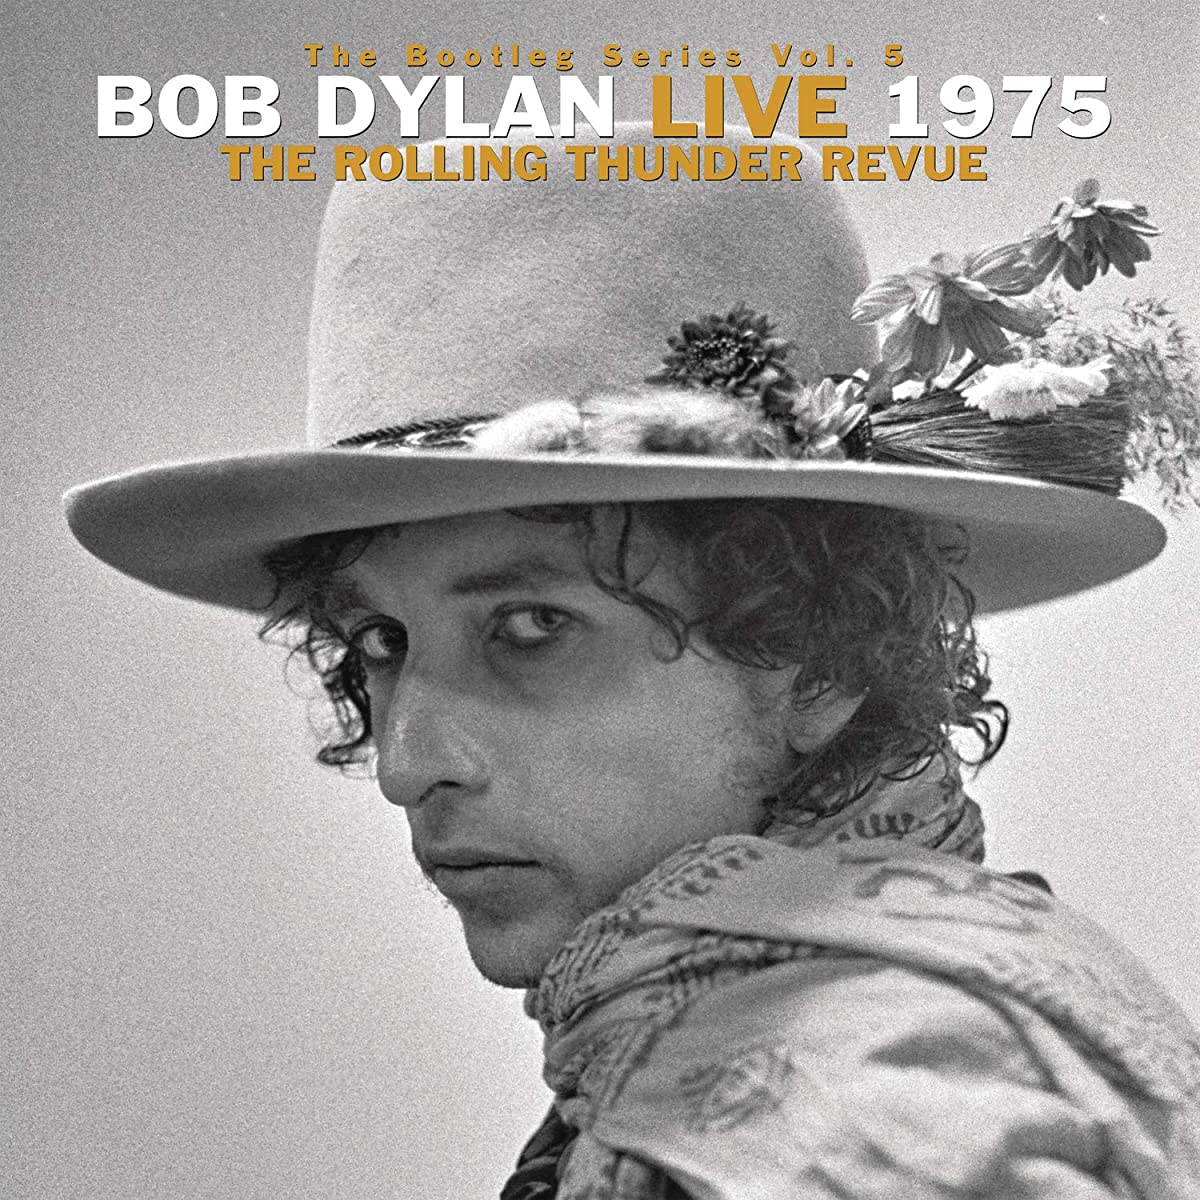 The Bootleg Series Vol. 5 Bob Dylan Live 1975- The Rolling Thunder Revue by Bob Dylan